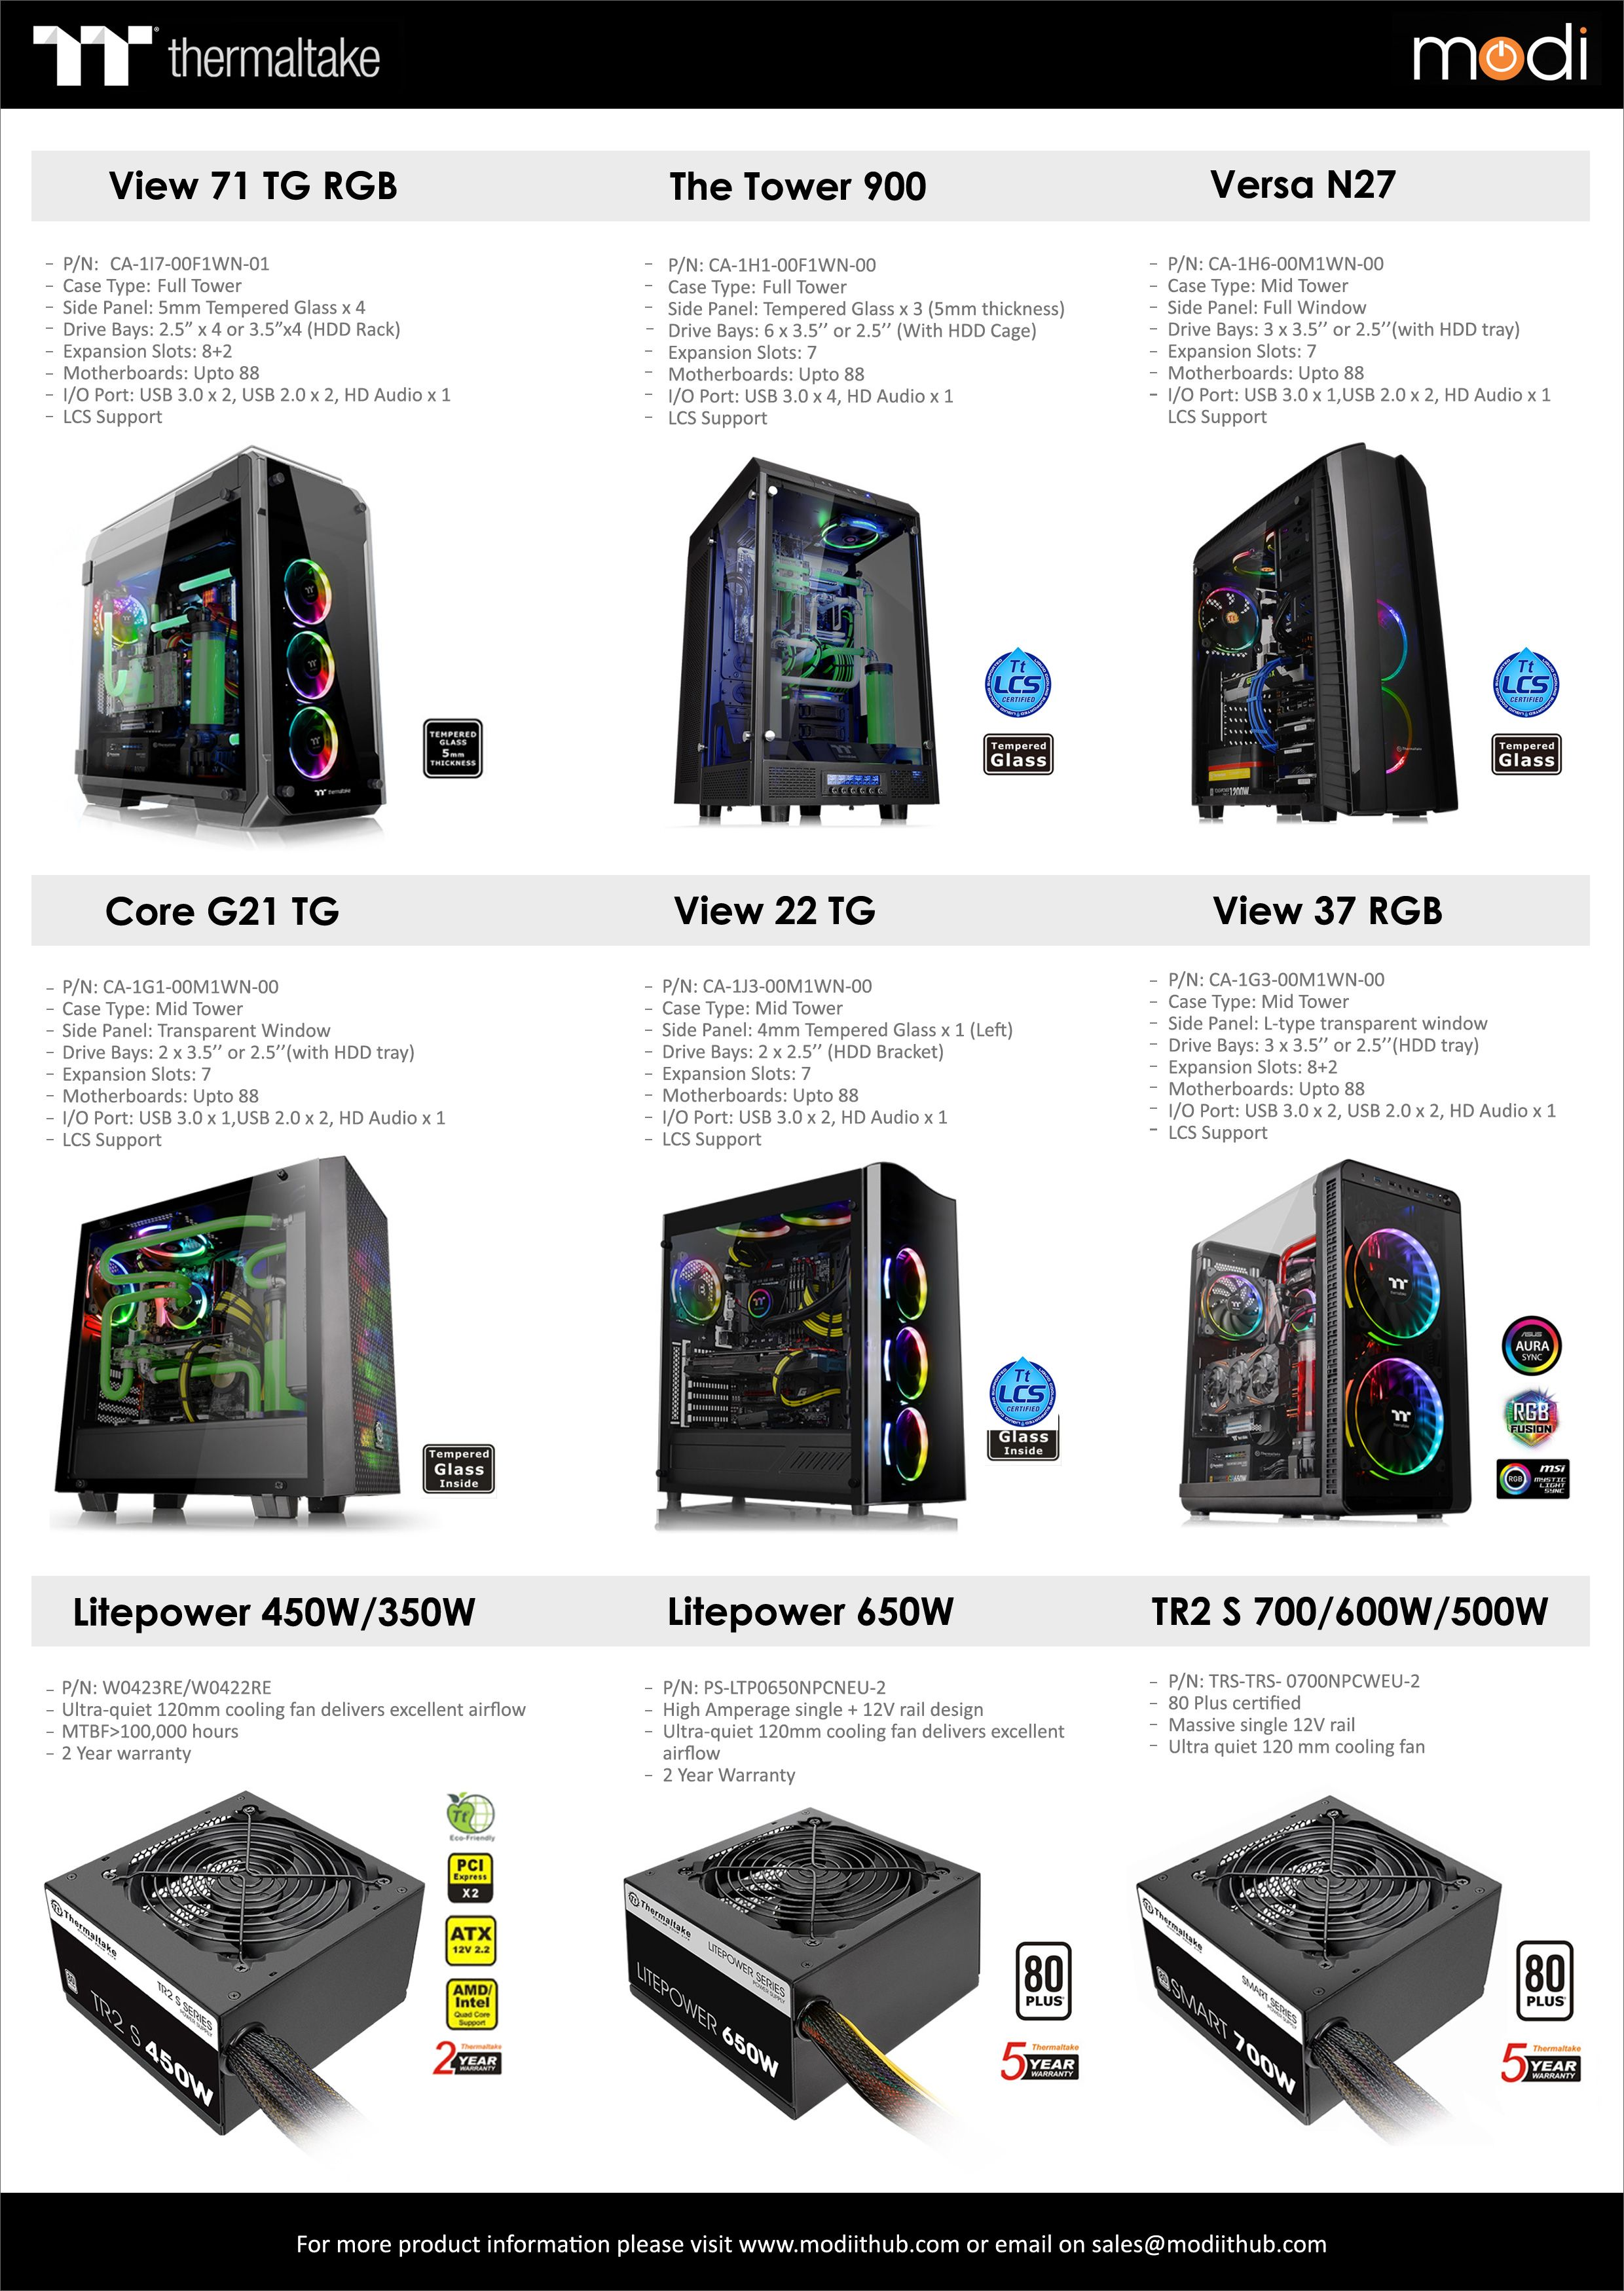 Name Of Gaming Chassis Are As I View 71 Tg Rgb Ii The Tower 900 Iii Versa N27 Iv Core G21 Tg V View 22 T Names Of Games Data Services Data Security